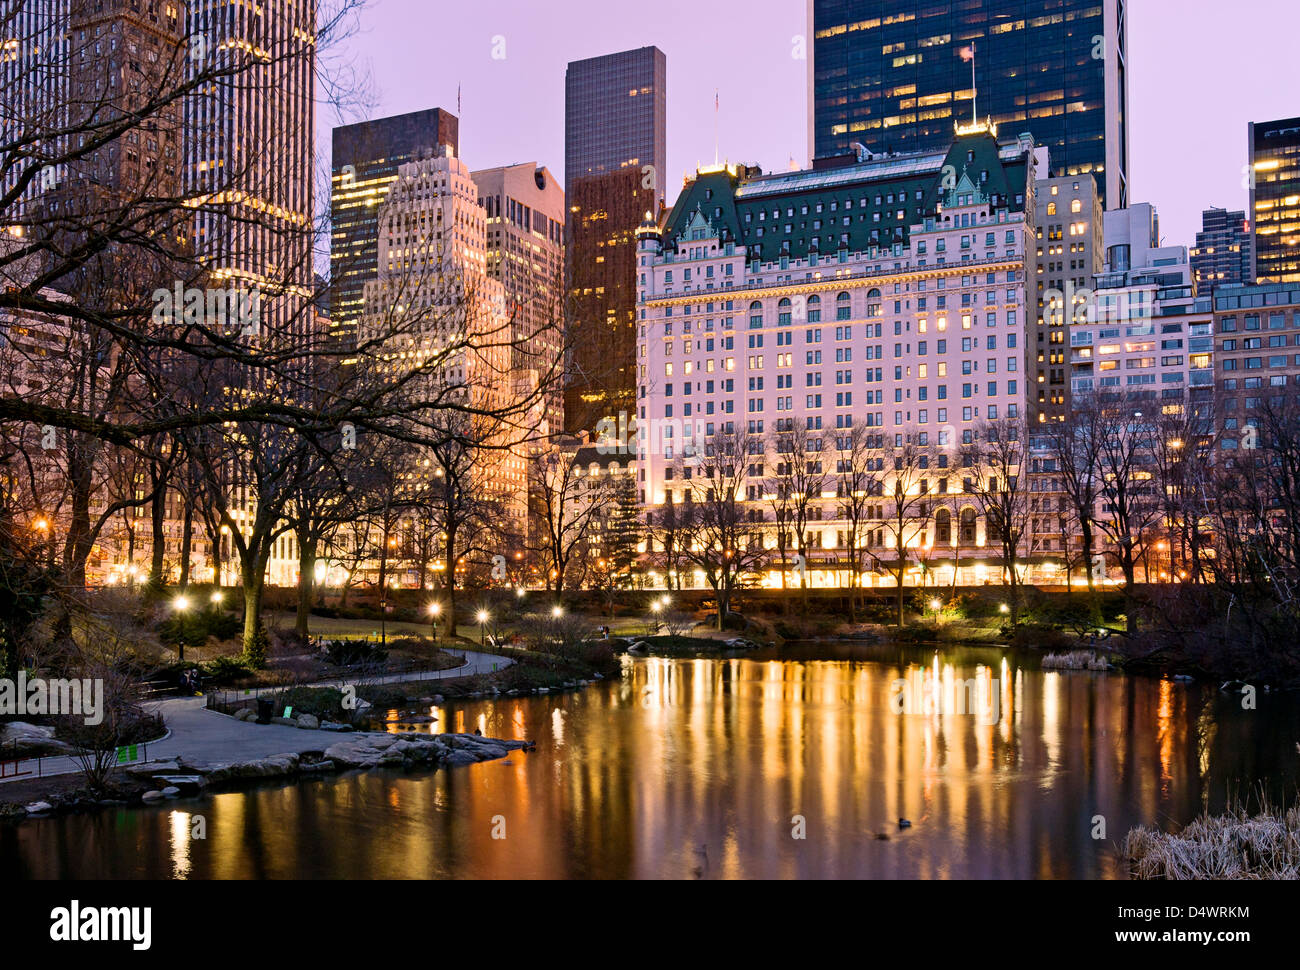 Plaza hotel midtown manhattan dusk central park stock for Hotels near central park new york